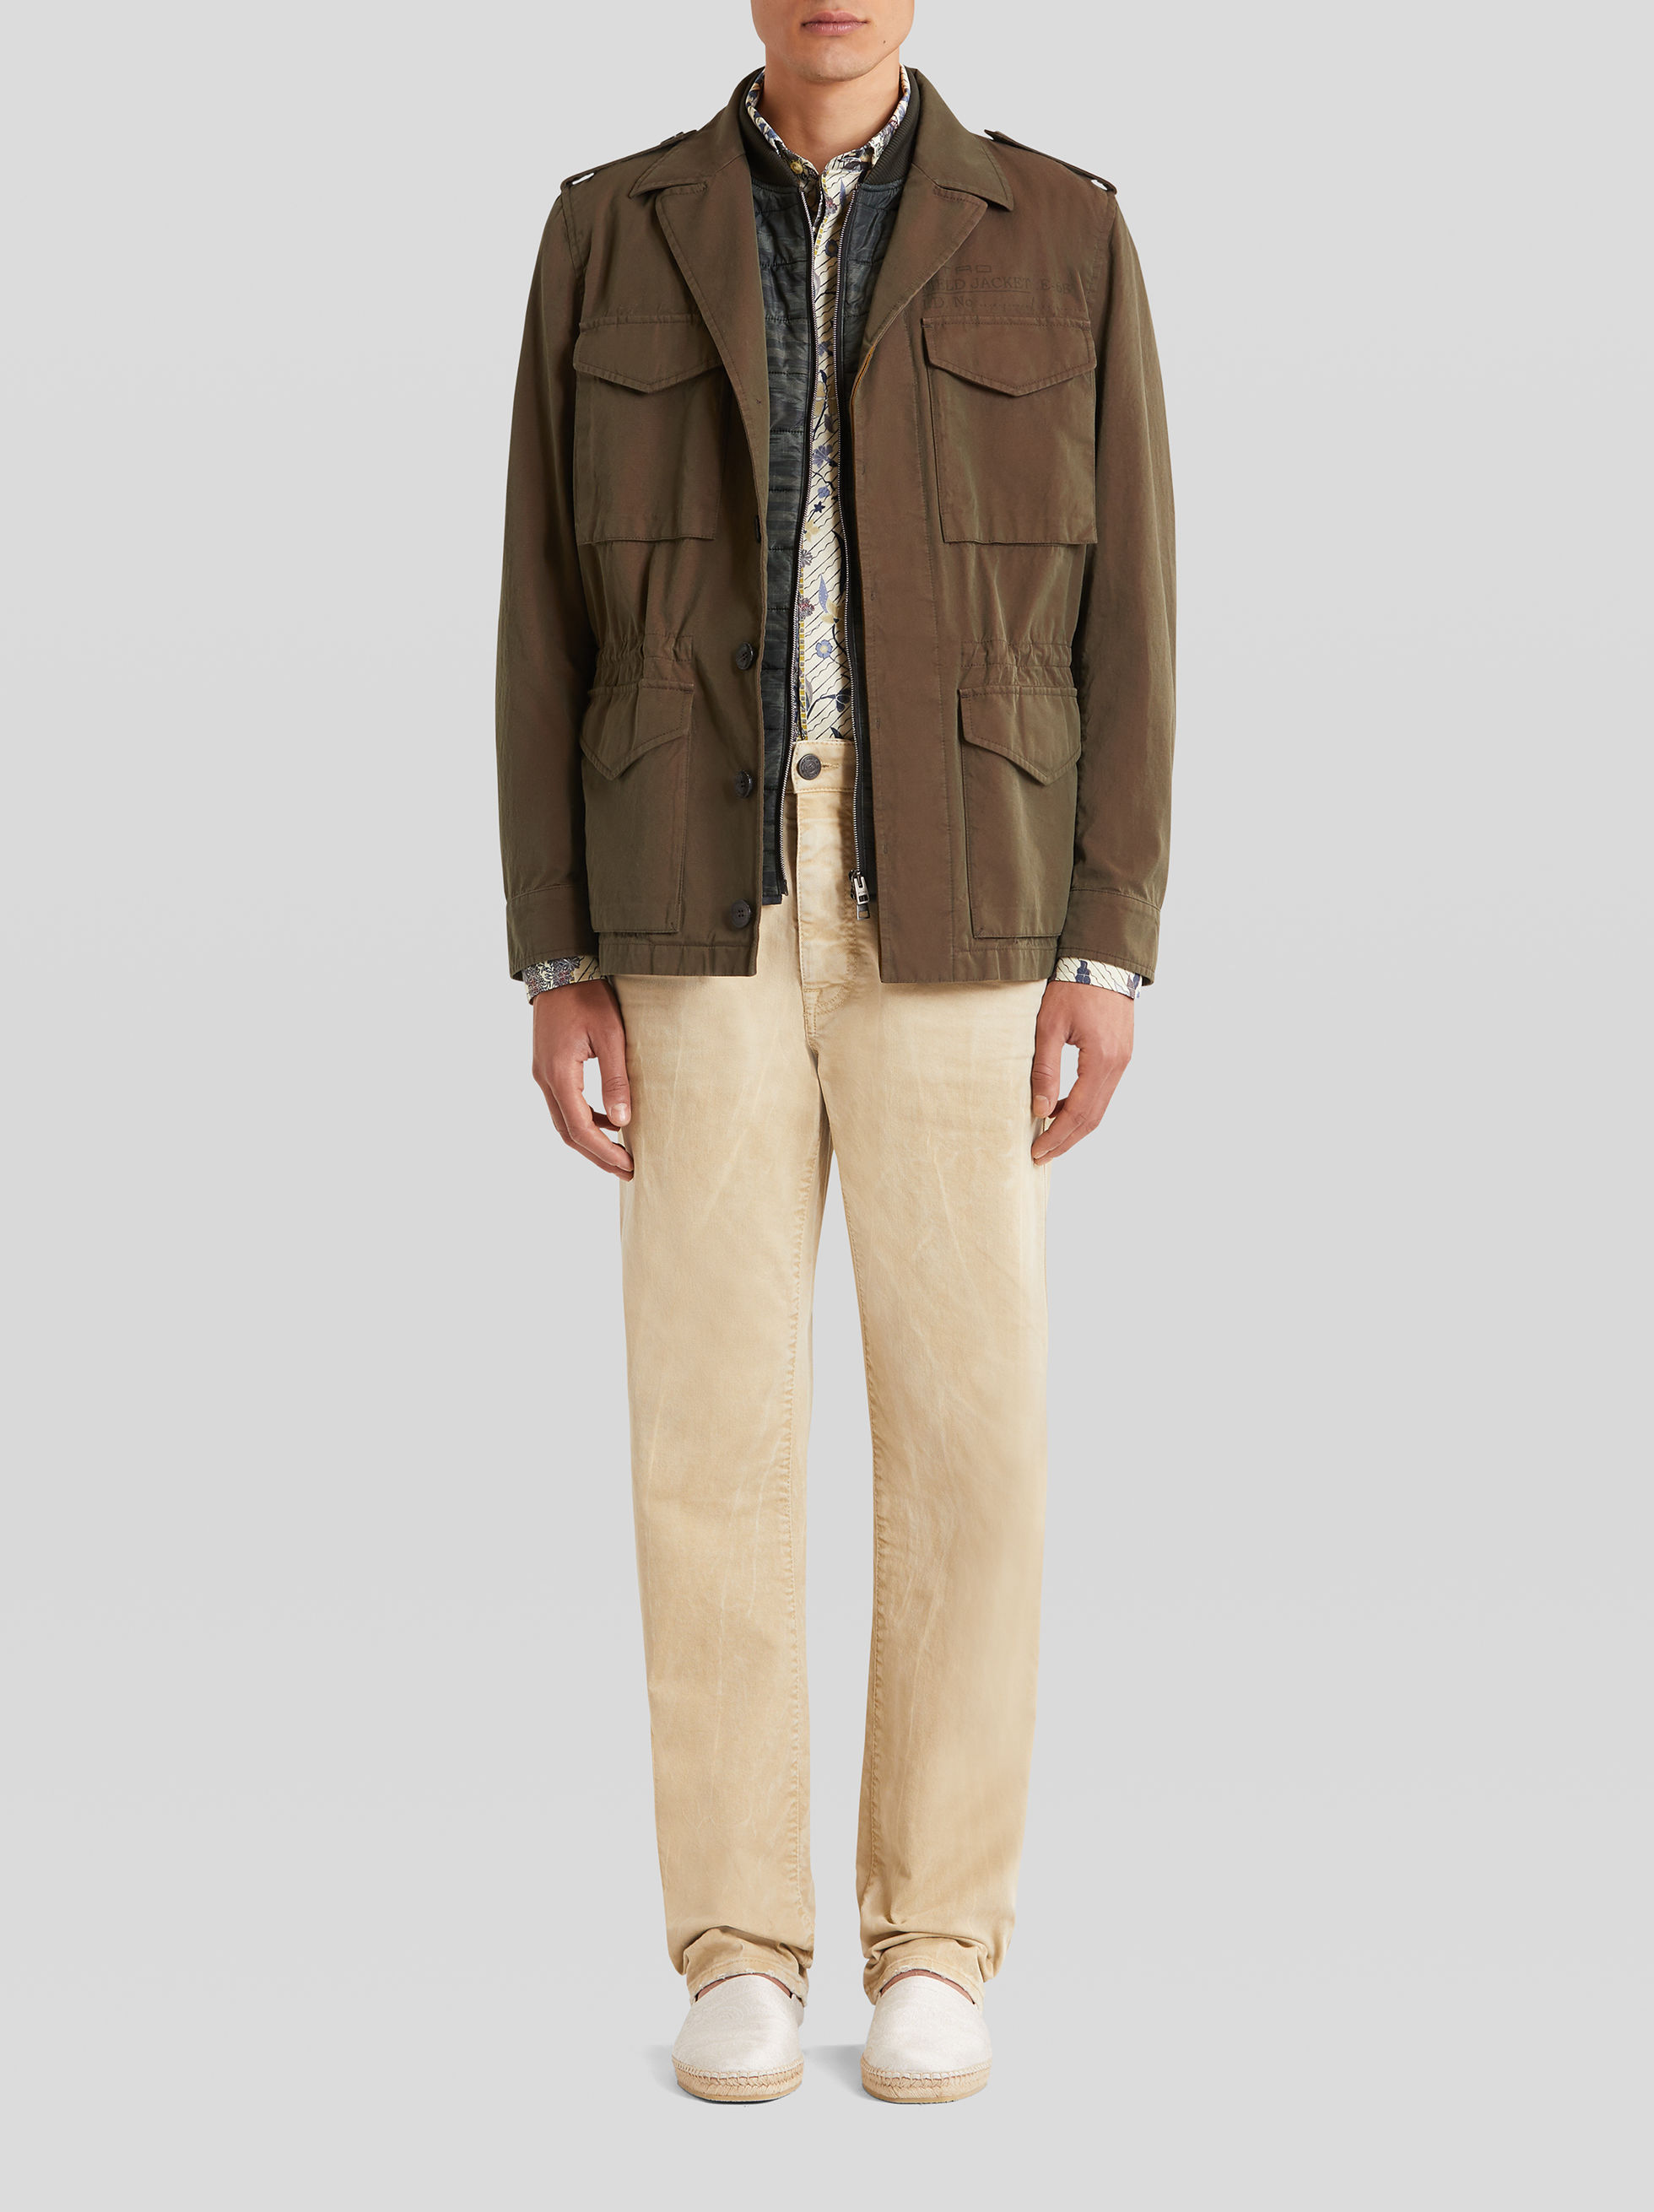 SAFARI JACKET WITH INTERNAL WAISTCOAT